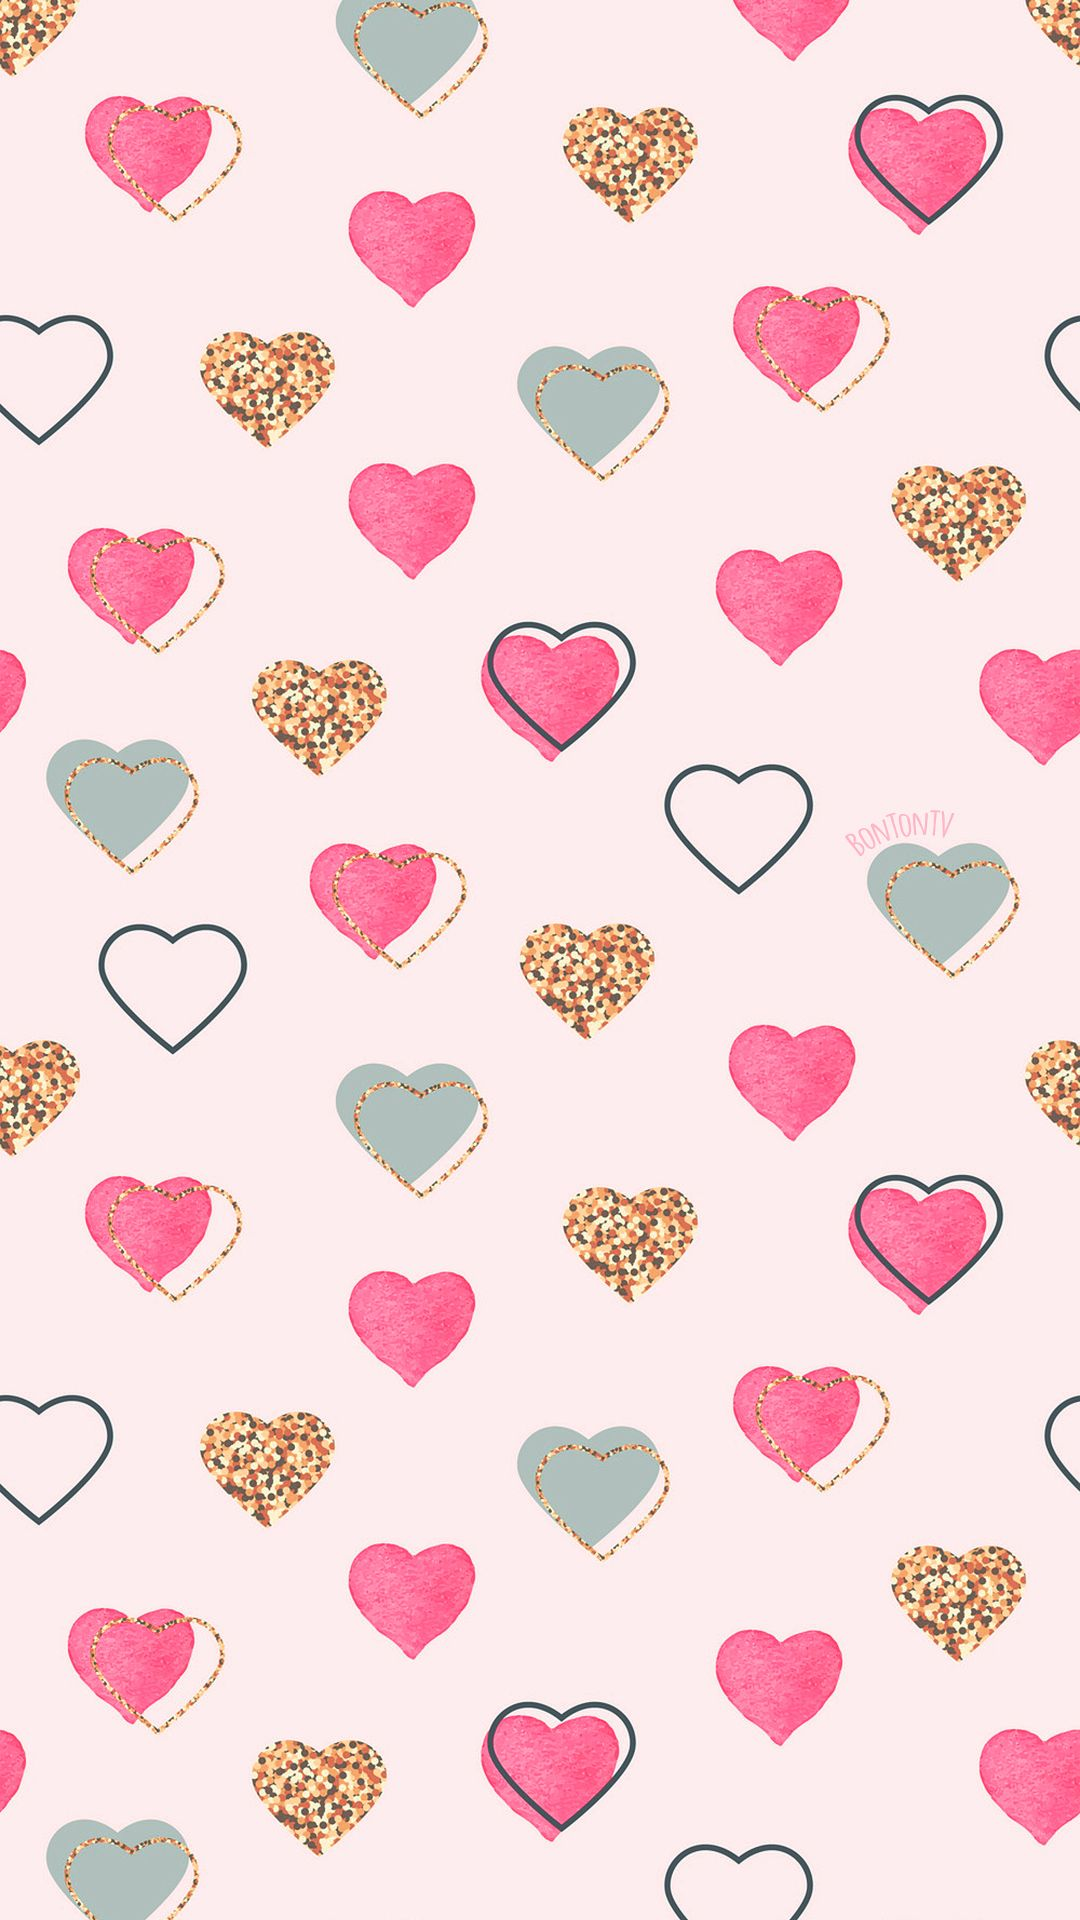 Phone Wallpapers Hd Pink Gold Pastel Hearts By Bonton Tv Free